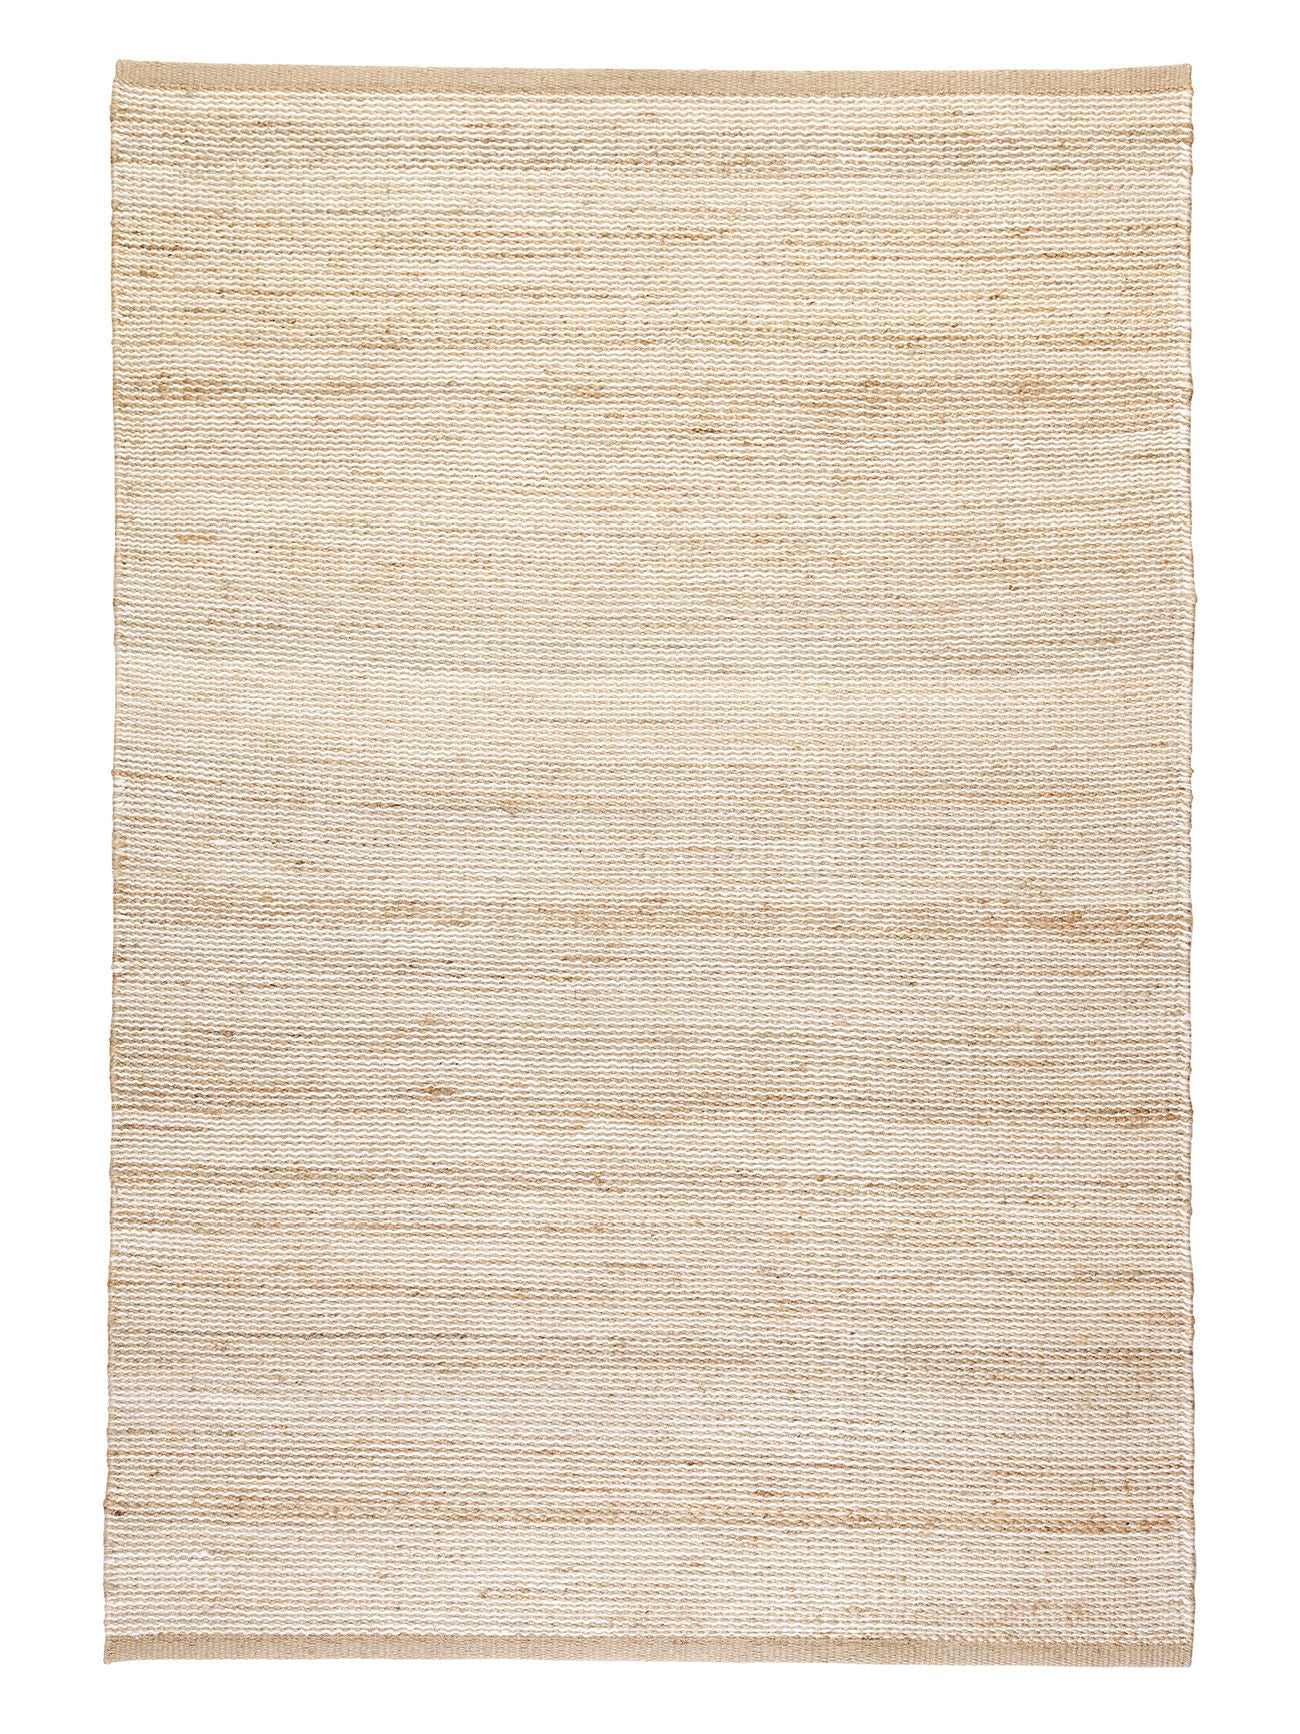 Natural and White Drift - Armadillo Floor Rug